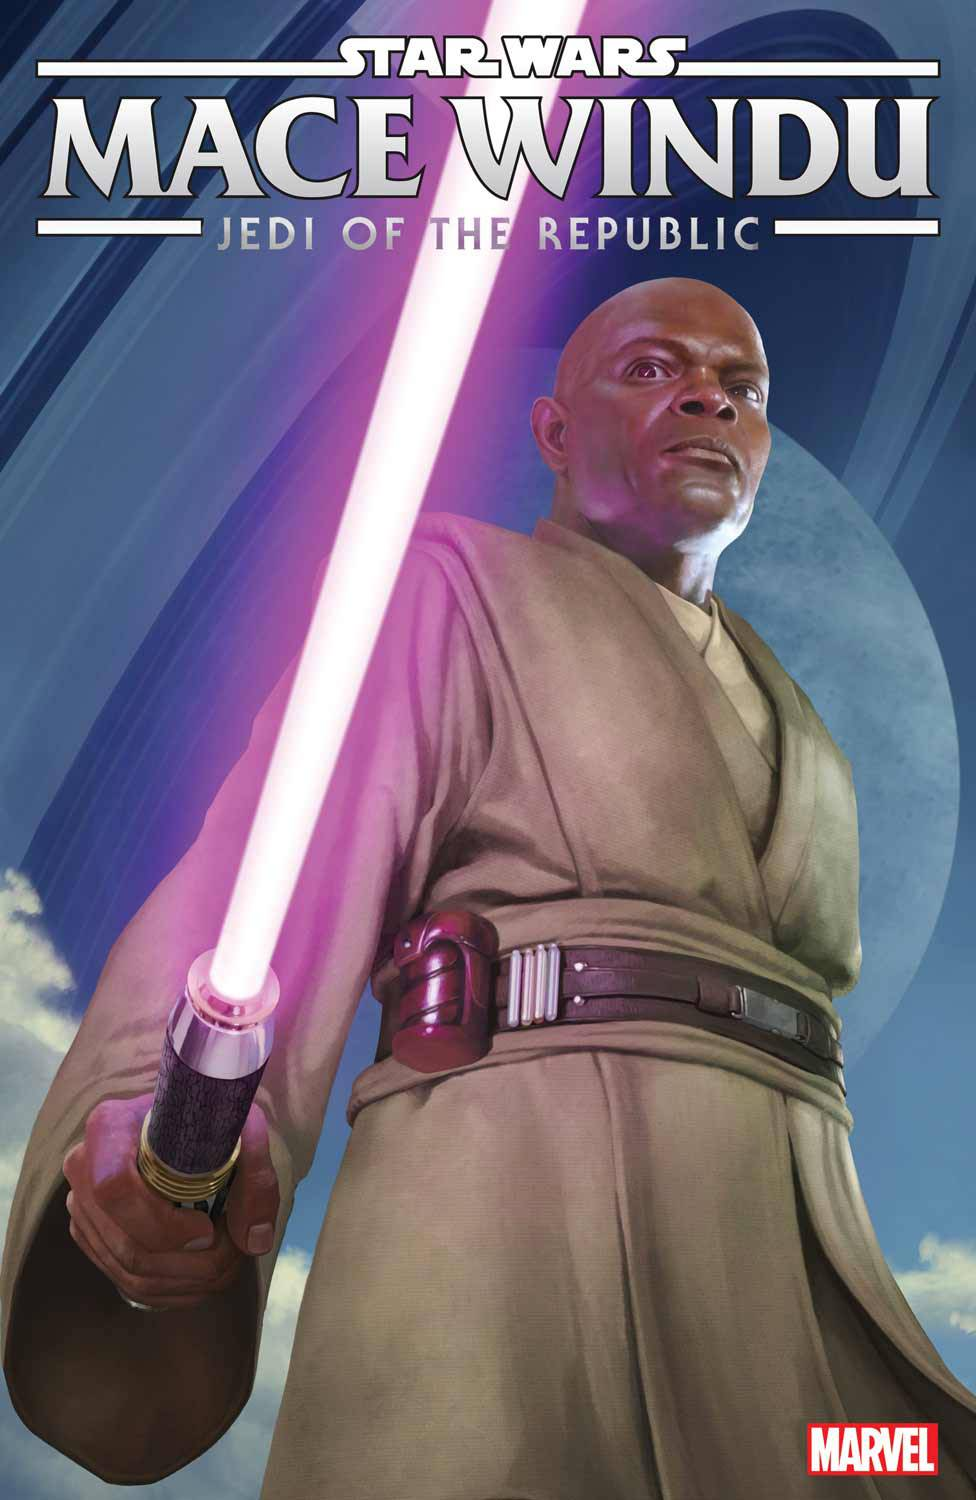 STAR WARS JEDI REPUBLIC MACE WINDU 1 of 5 RAHZZAH VAR.jpg